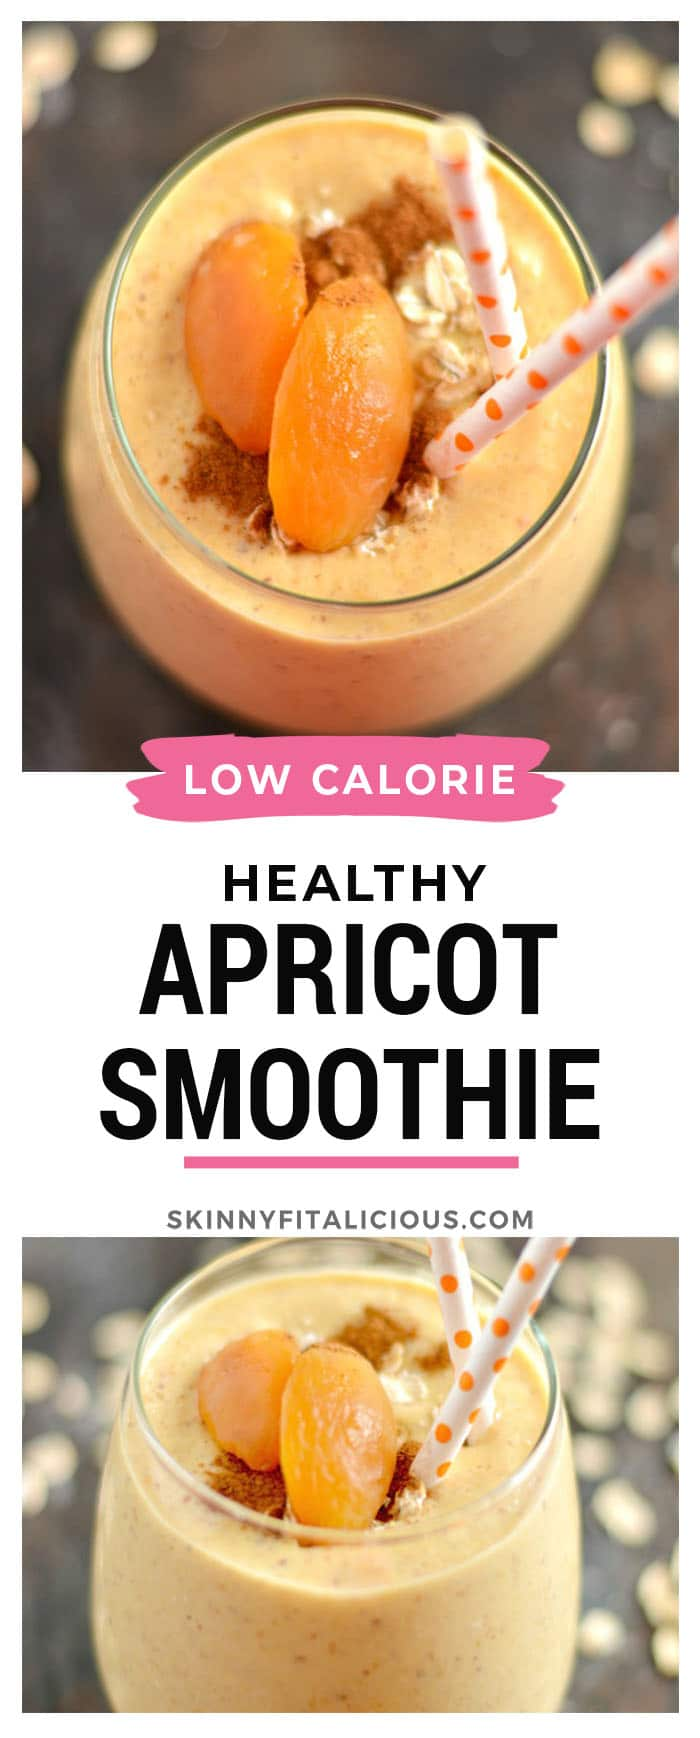 This Cinnamon Oat Apricot Smoothie isthick, creamy & bursting with sweet cinnamon flavors. This smoothie is guaranteed to keep you satisfied for hours.An easy gluten-free breakfast or snack. Gluten Free + Low Calorie